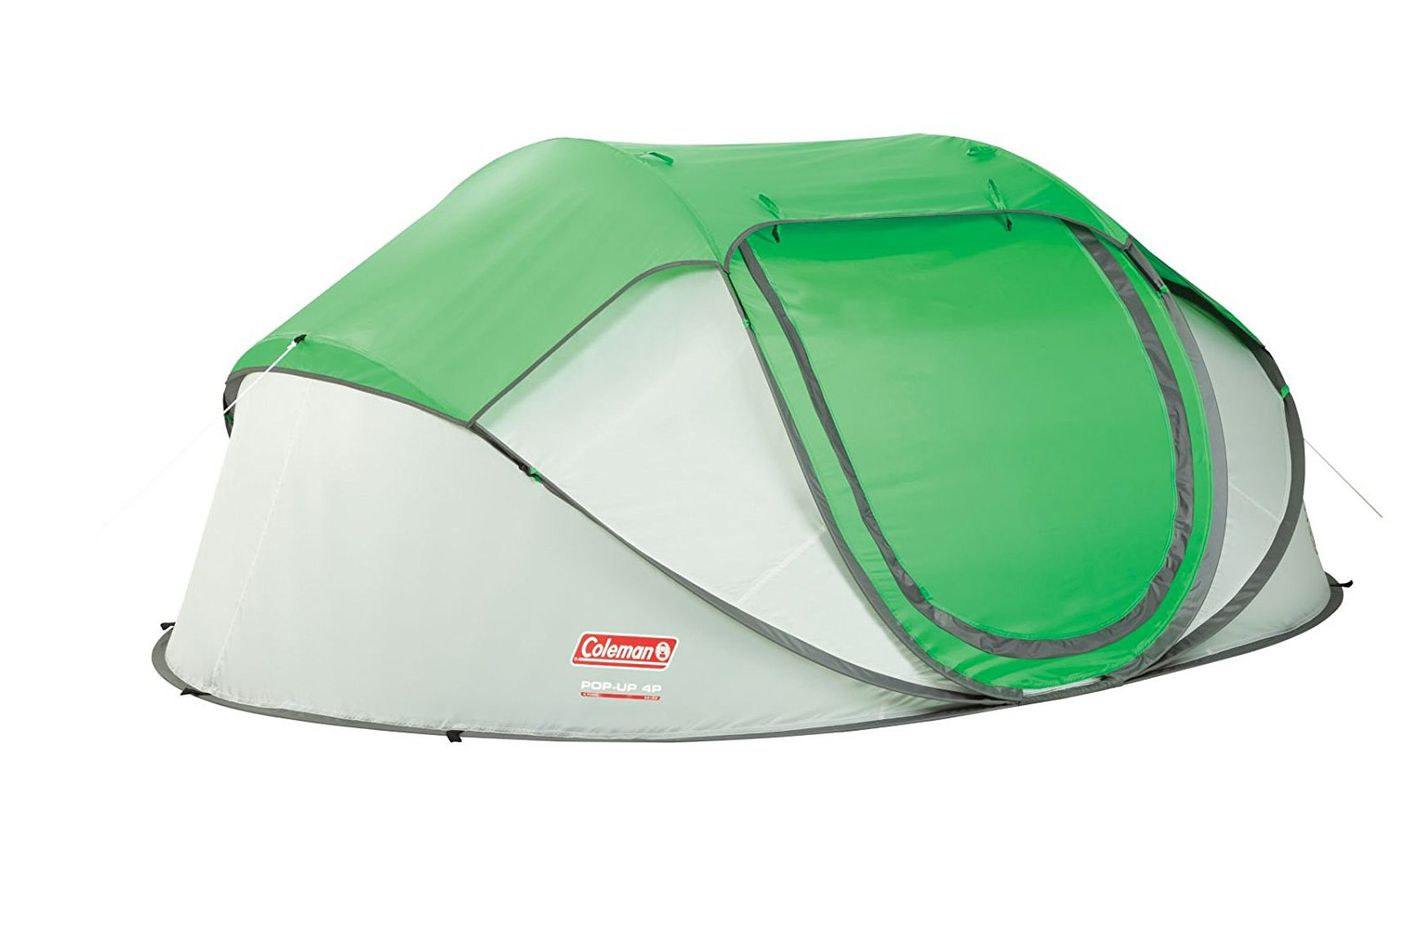 best outdoor tent  sc 1 st  New York Magazine & The Best Outdoor Tents on Amazon Reviews